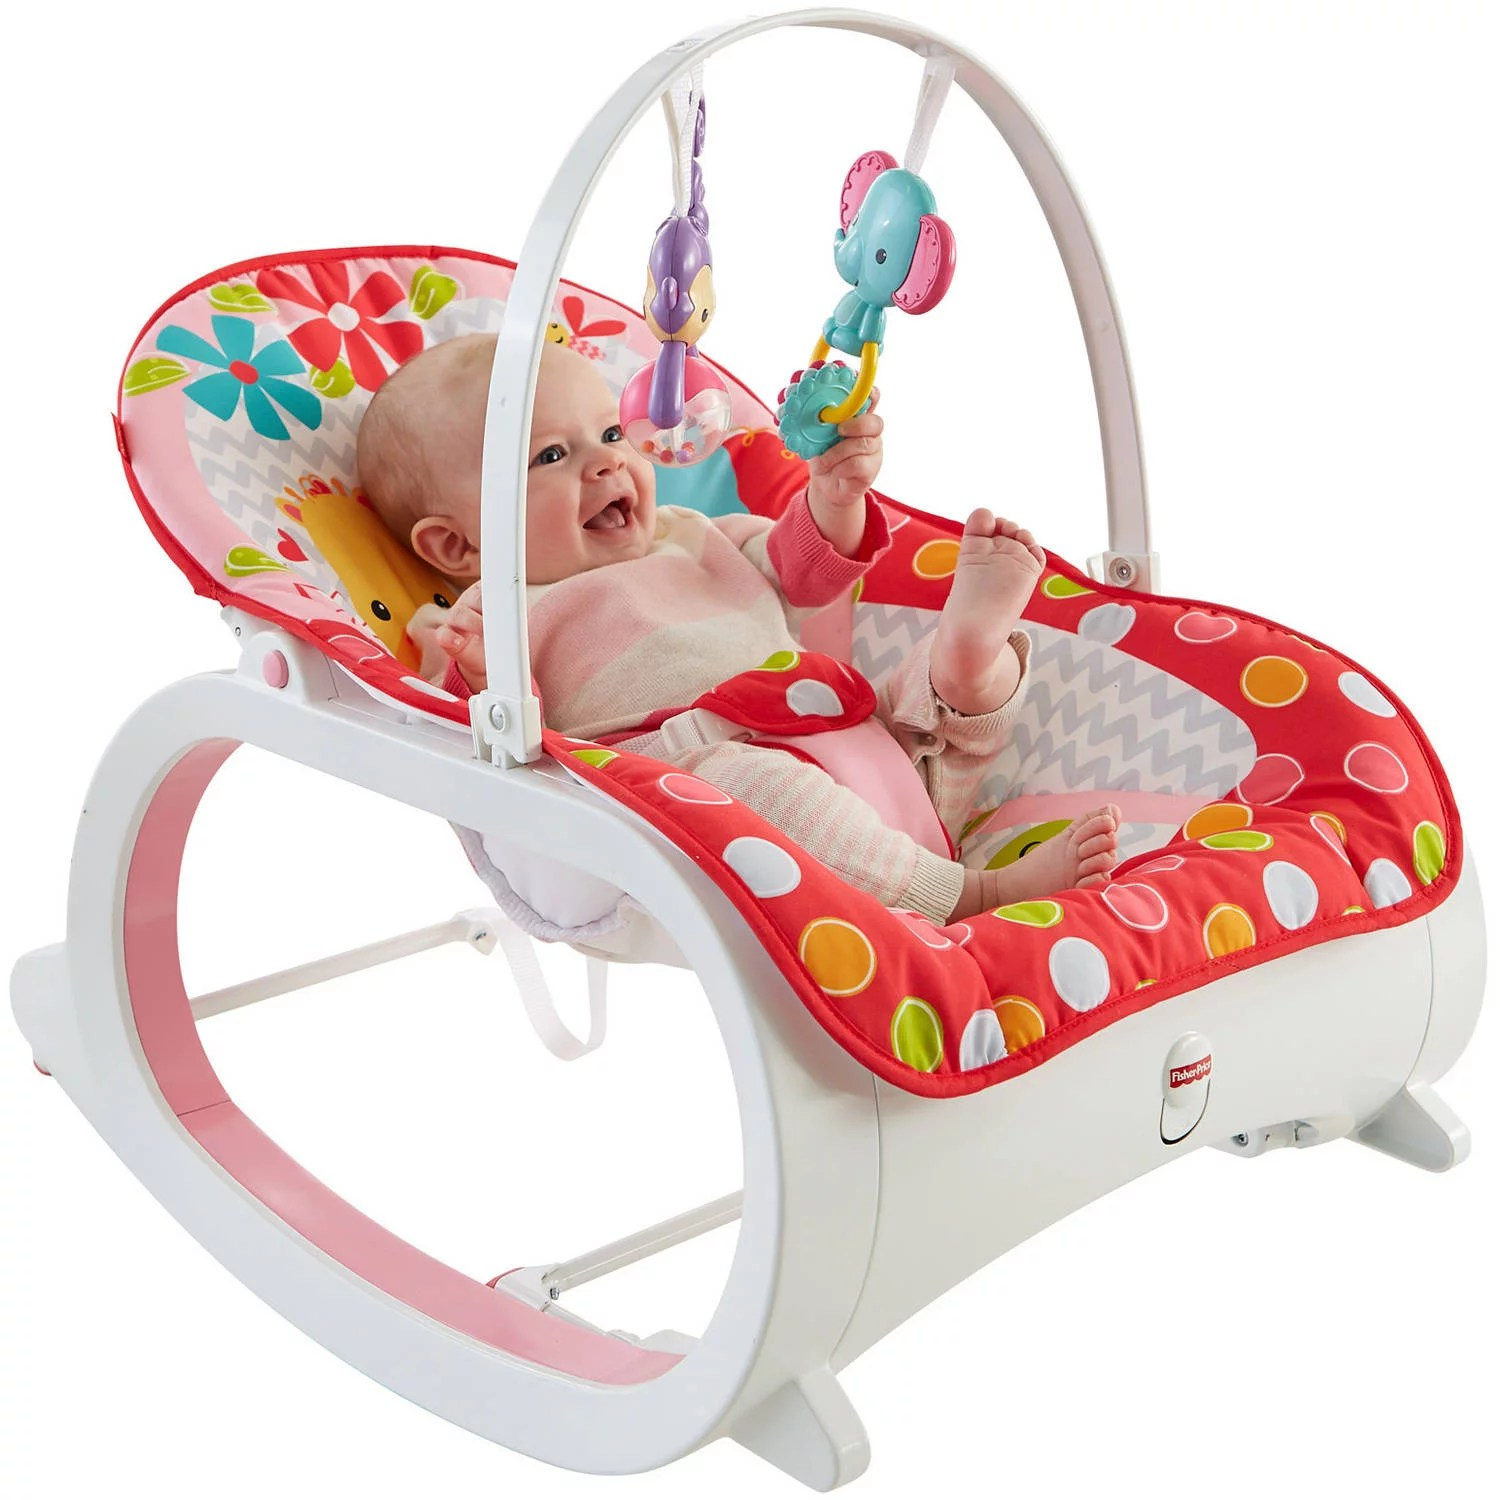 Bouncer Baby Fisher Price Infant To Toddler Rocker Baby Seat Bouncer